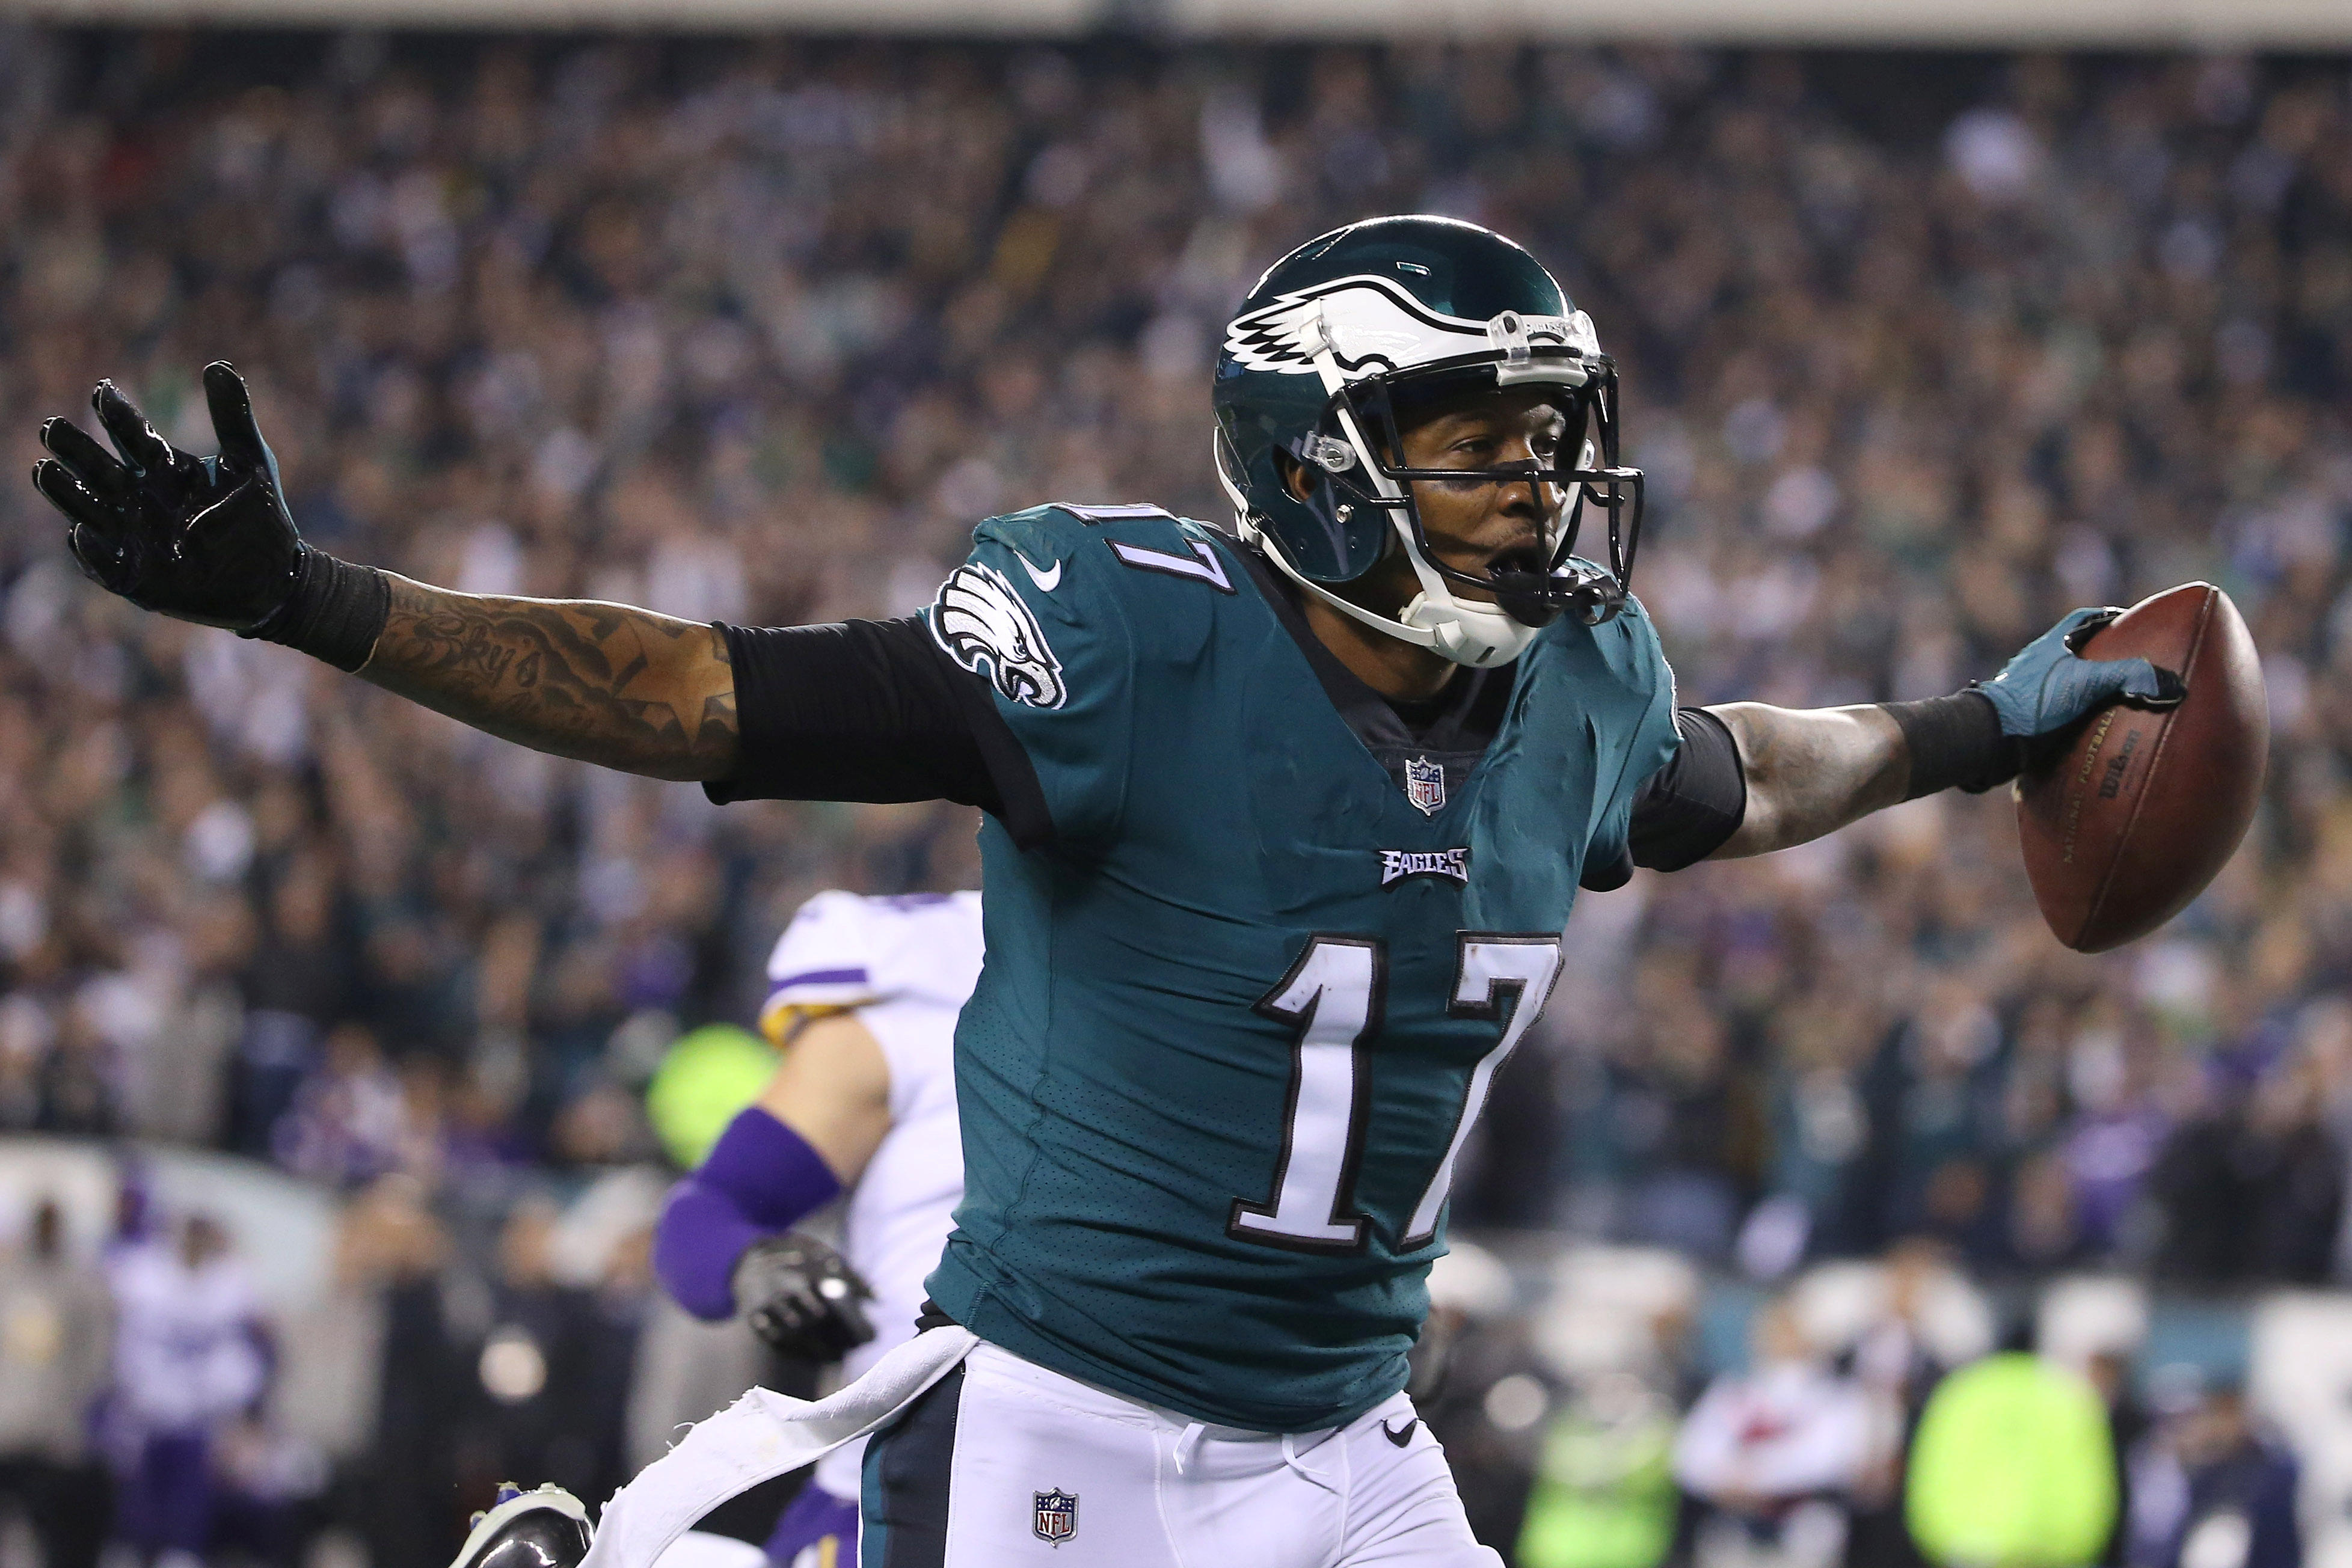 eeddc3309a1 NFC championship: Eagles soar to Super Bowl 52 with win over Vikings, 38-7